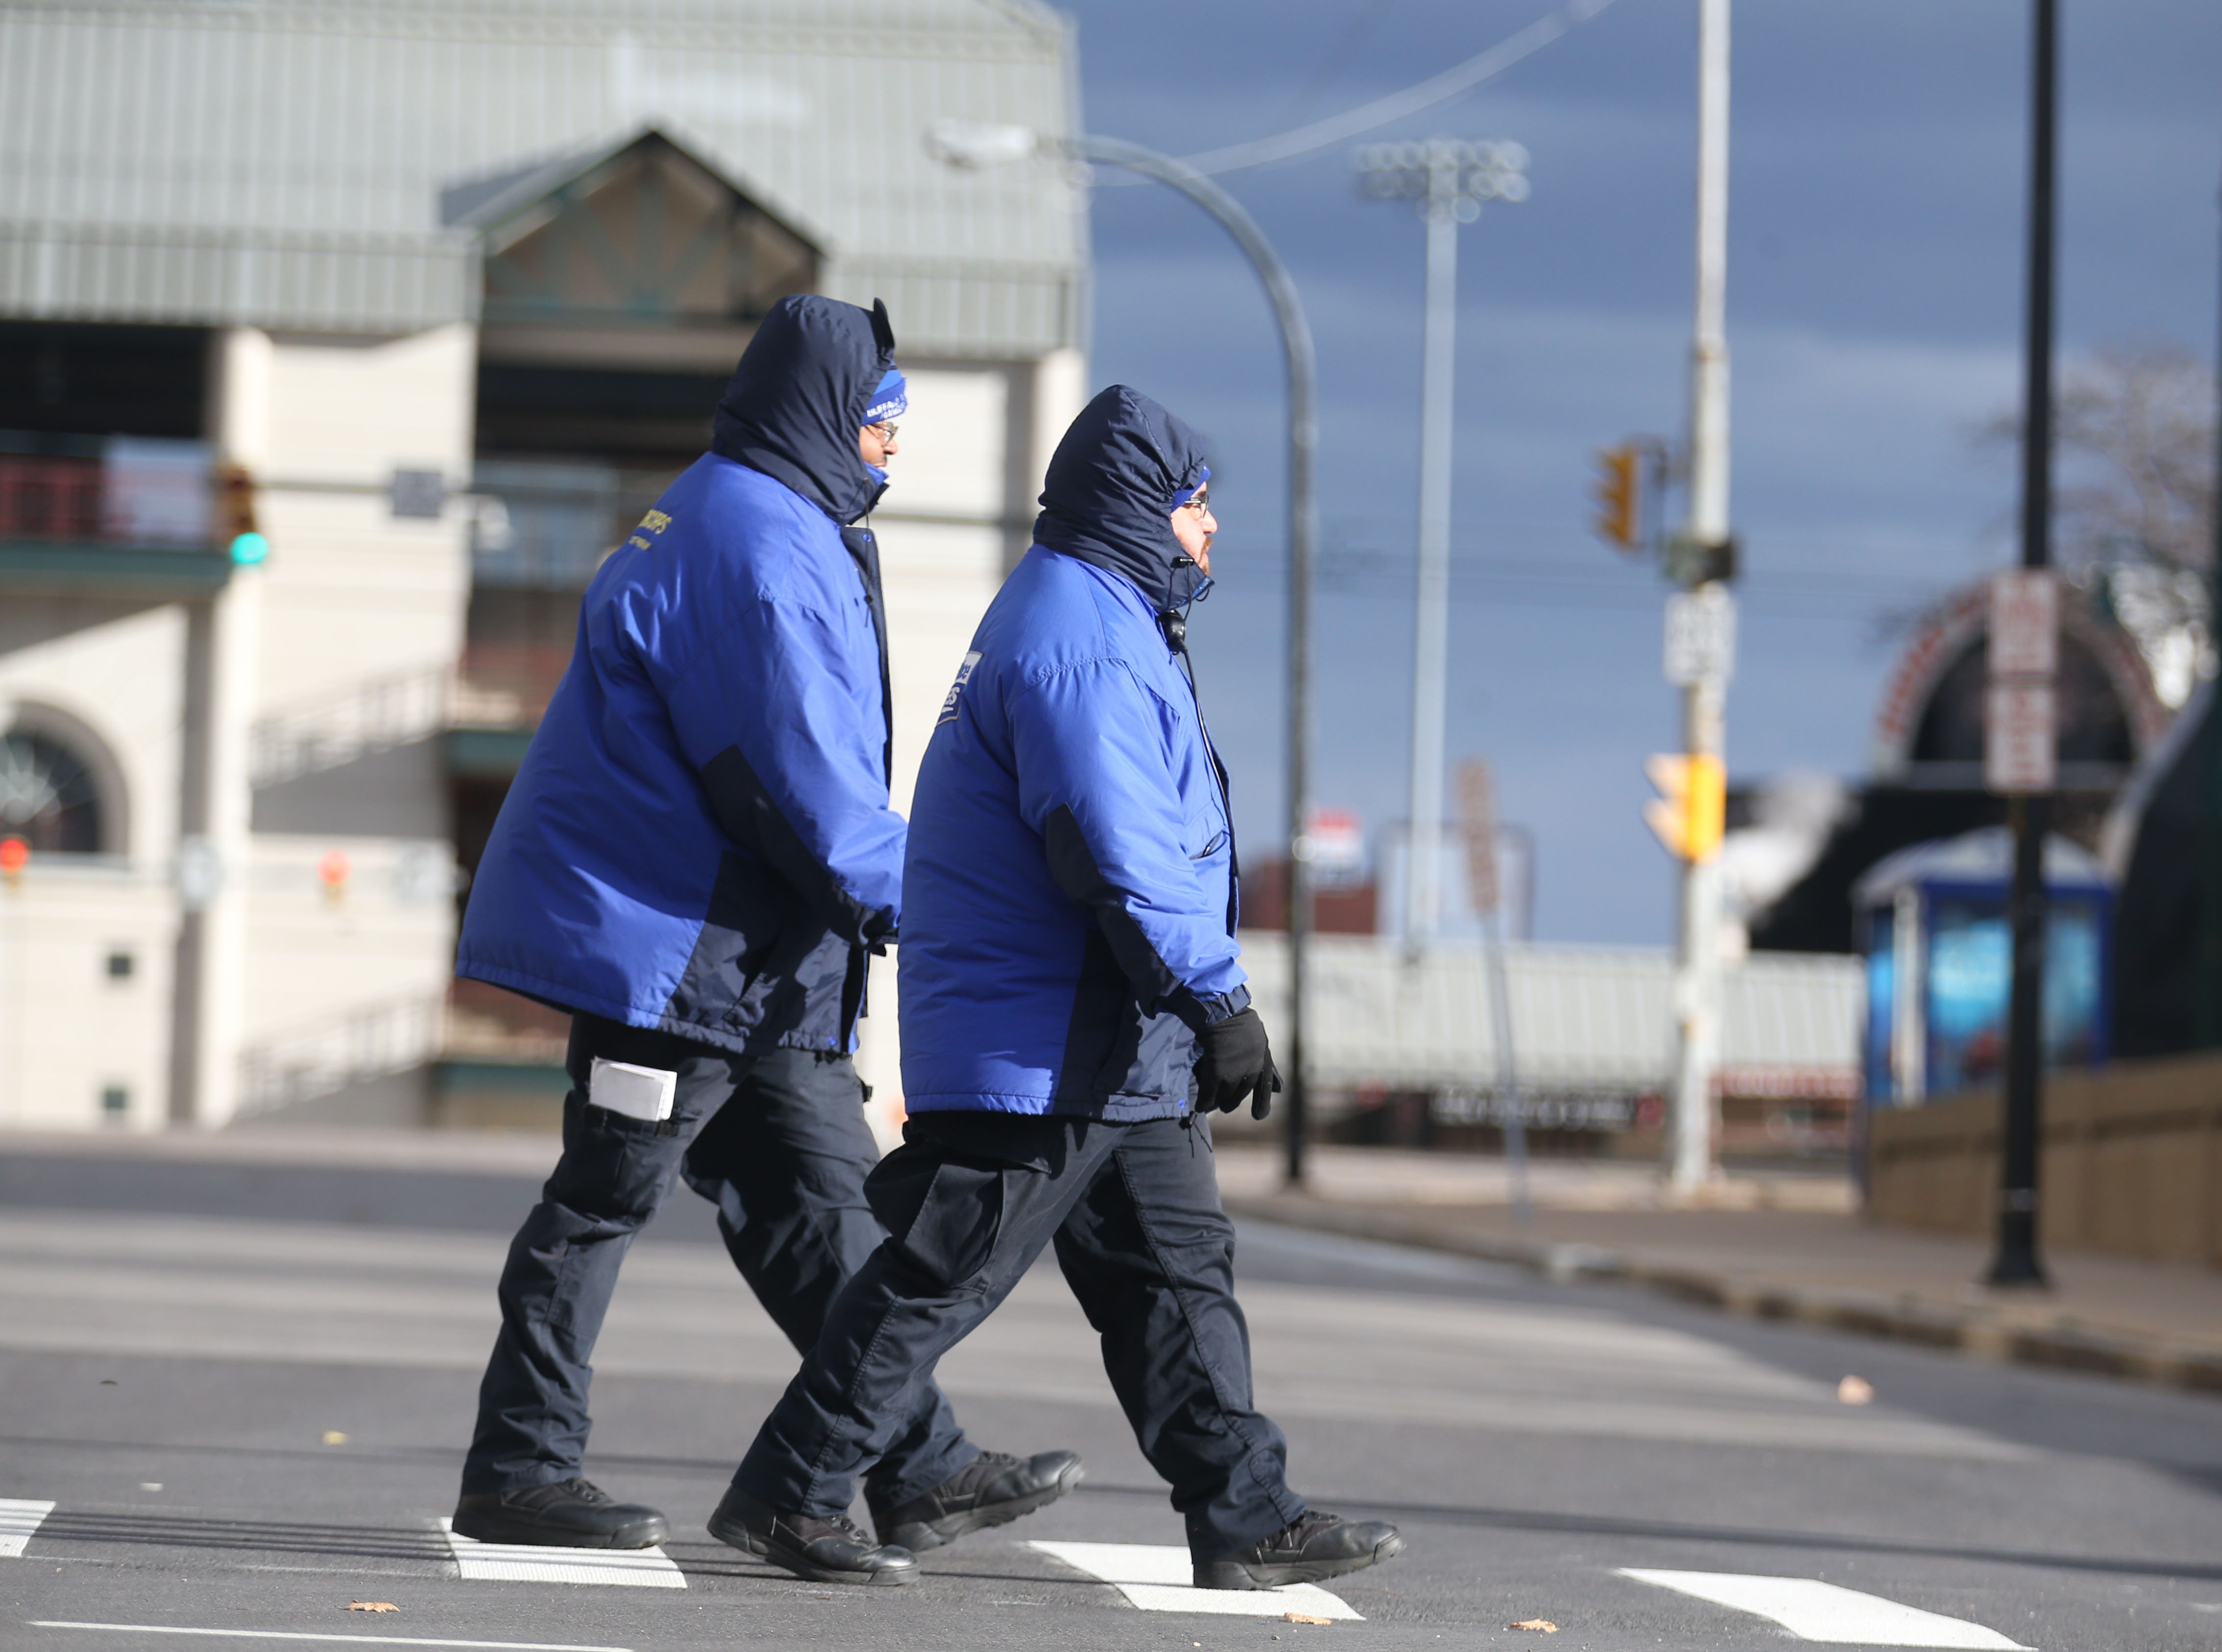 Gabriel Vazquez, right, and Melvin Stewart were bundled up as they crossed Seneca Street in Buffalo on Nov. 21.  (Sharon Cantillon/Buffalo News)